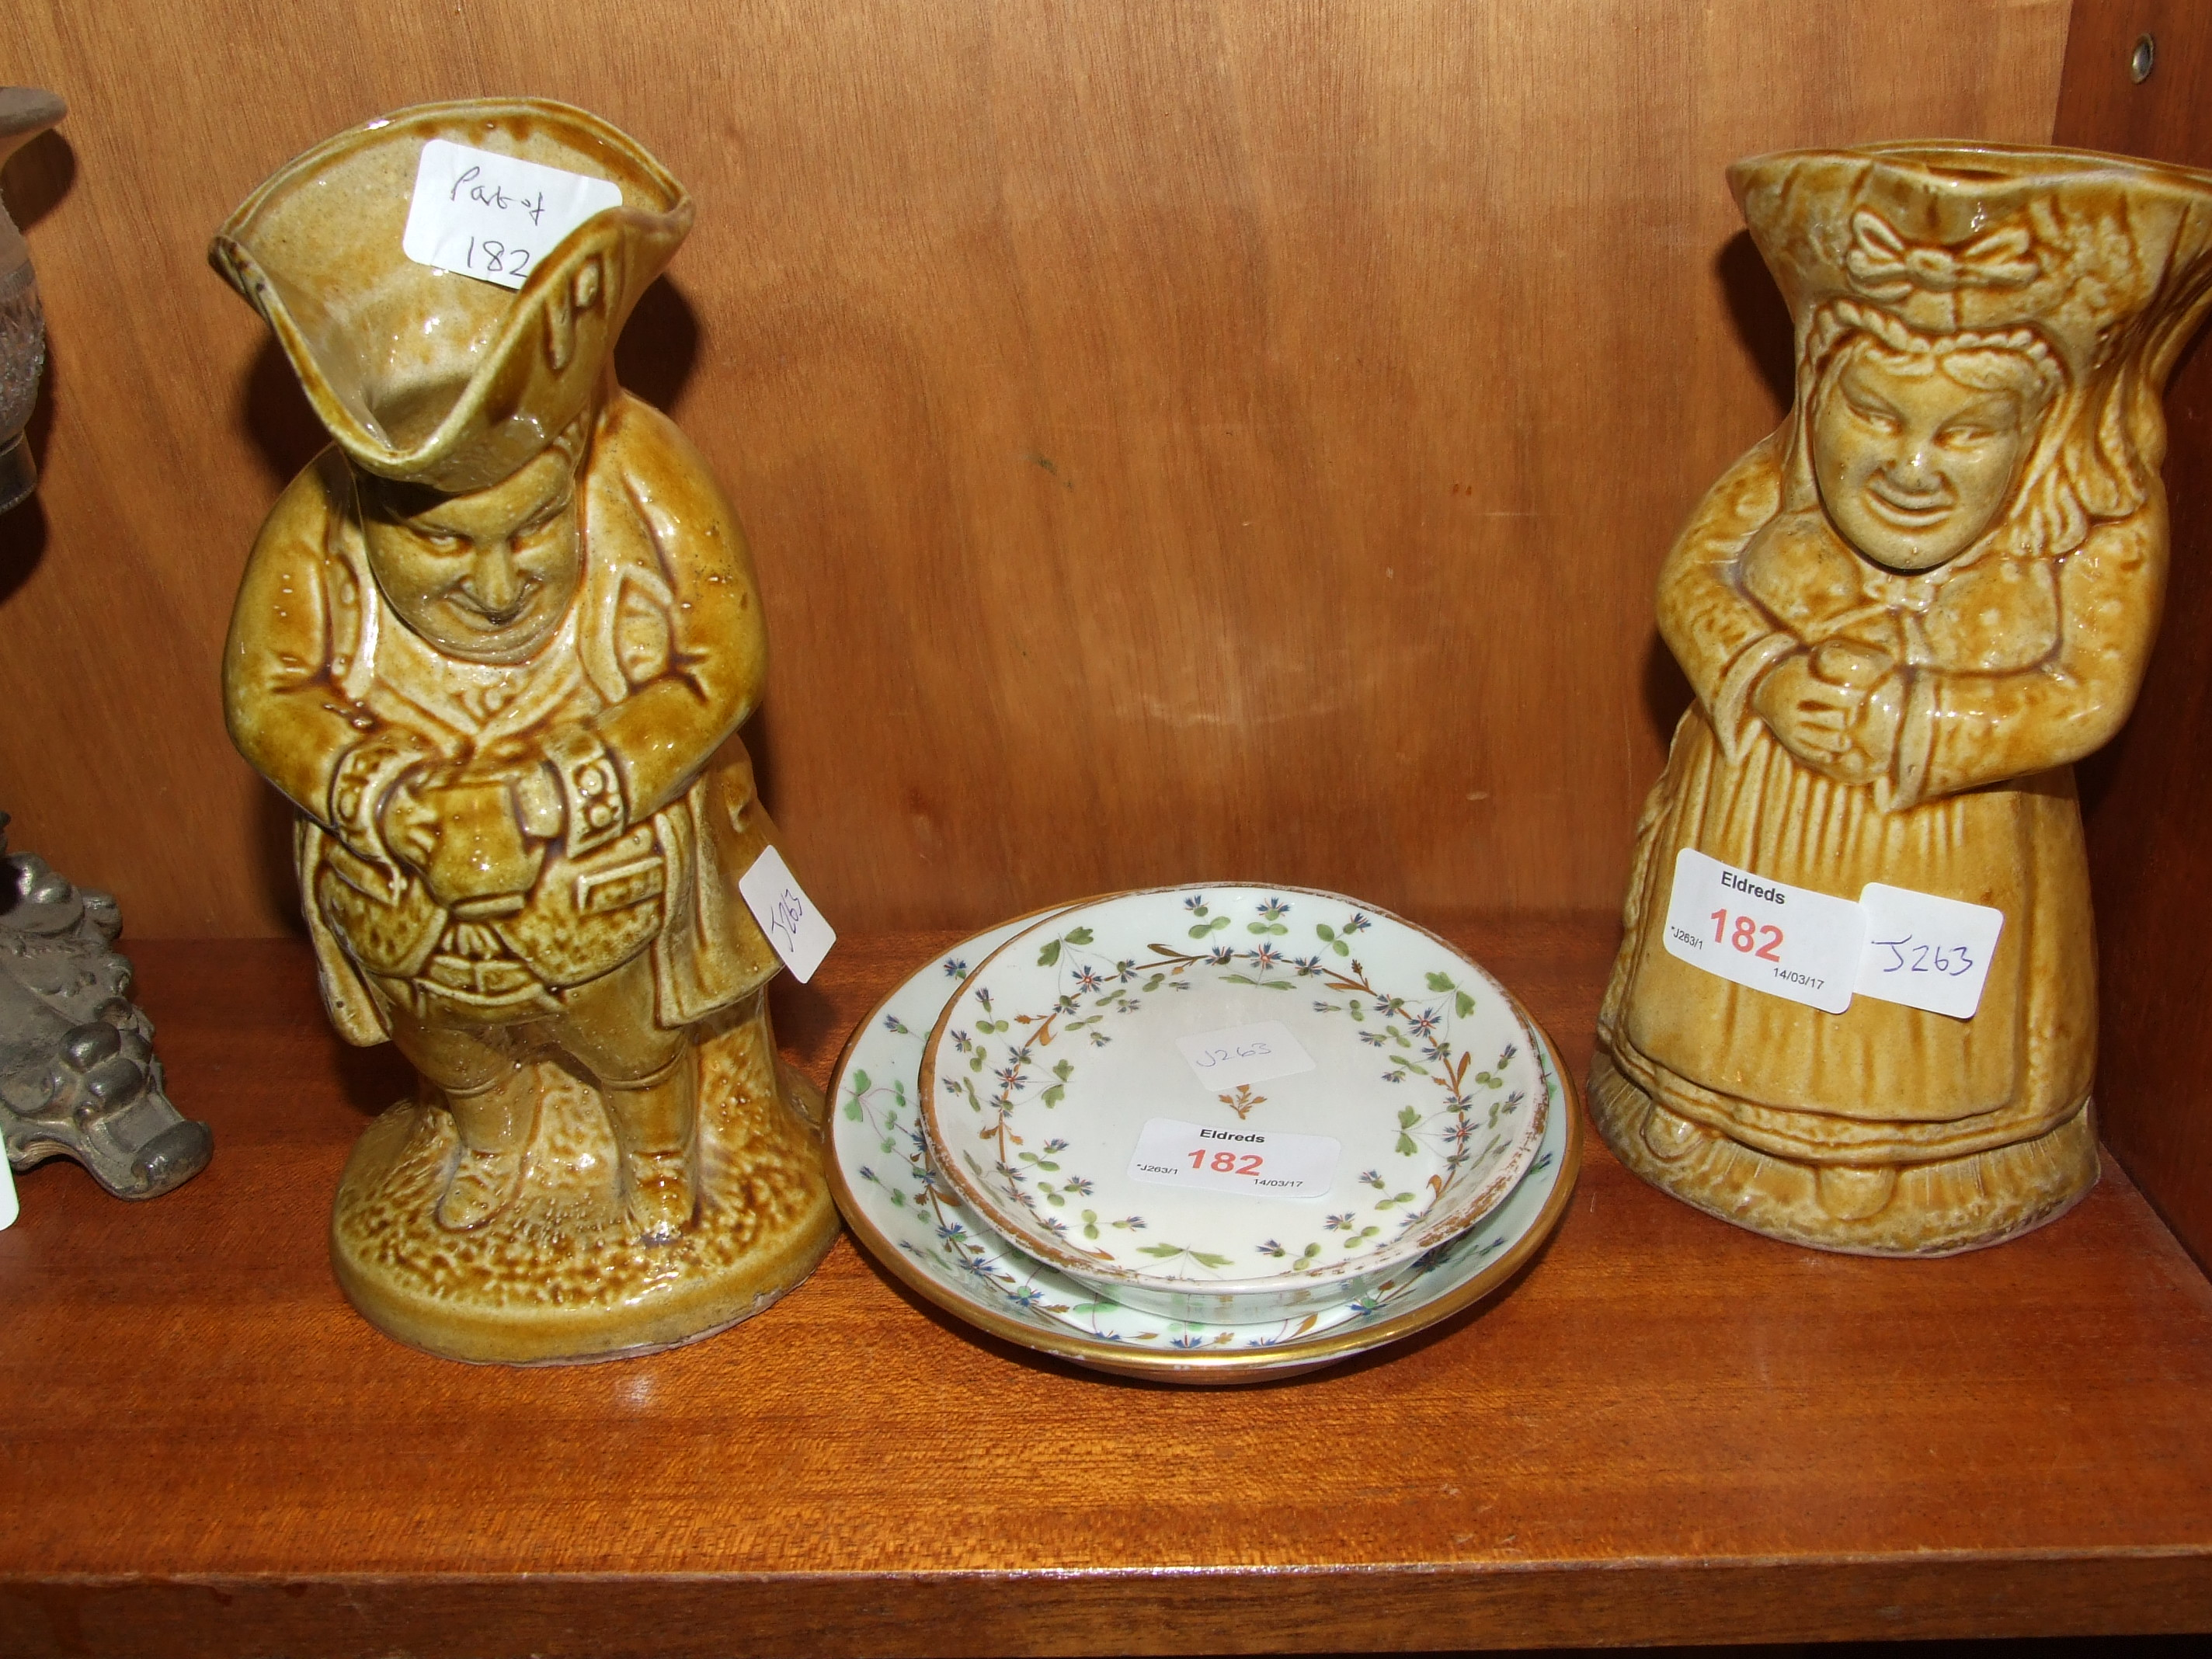 Lot 182 - Two salt glaze Toby jugs, 20cm high and two English ceramic oval trays with floral decoration, 17